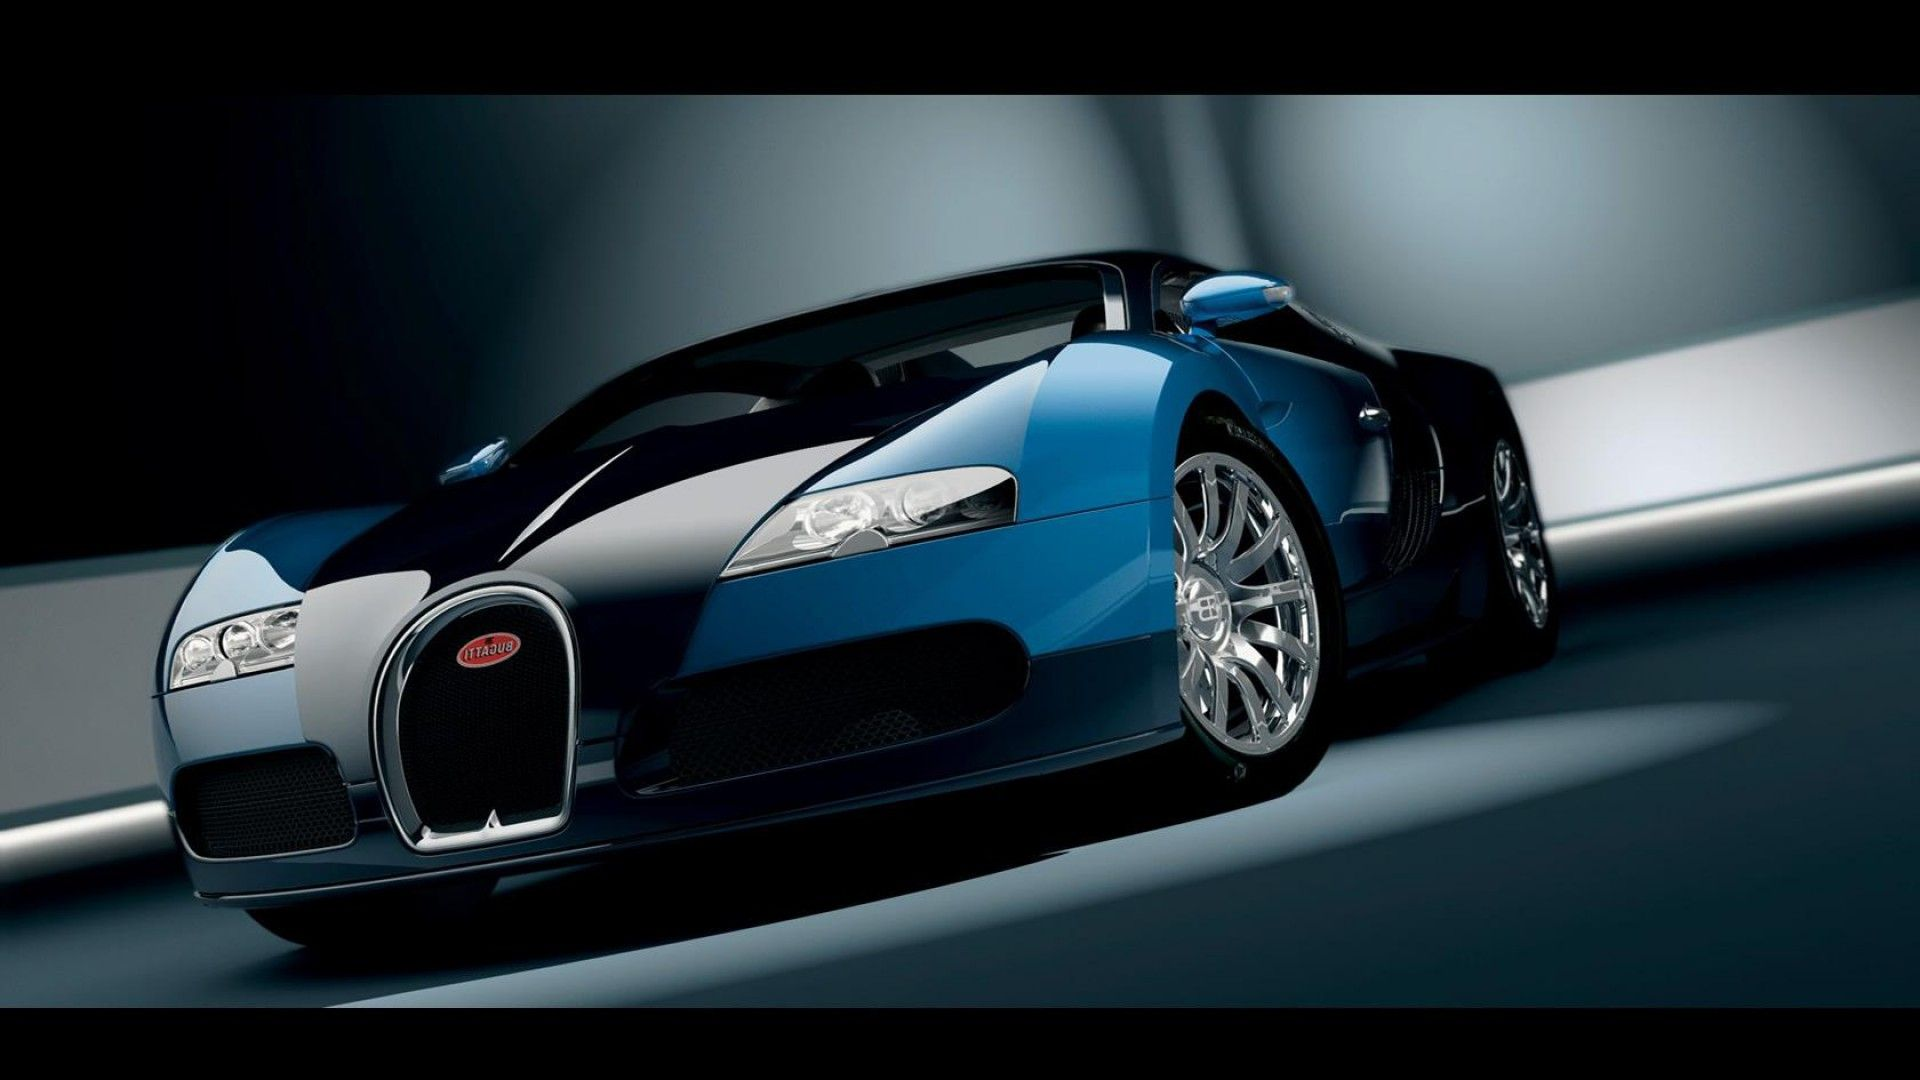 53 Best Free Neon Bugatti Wallpapers Wallpaperaccess